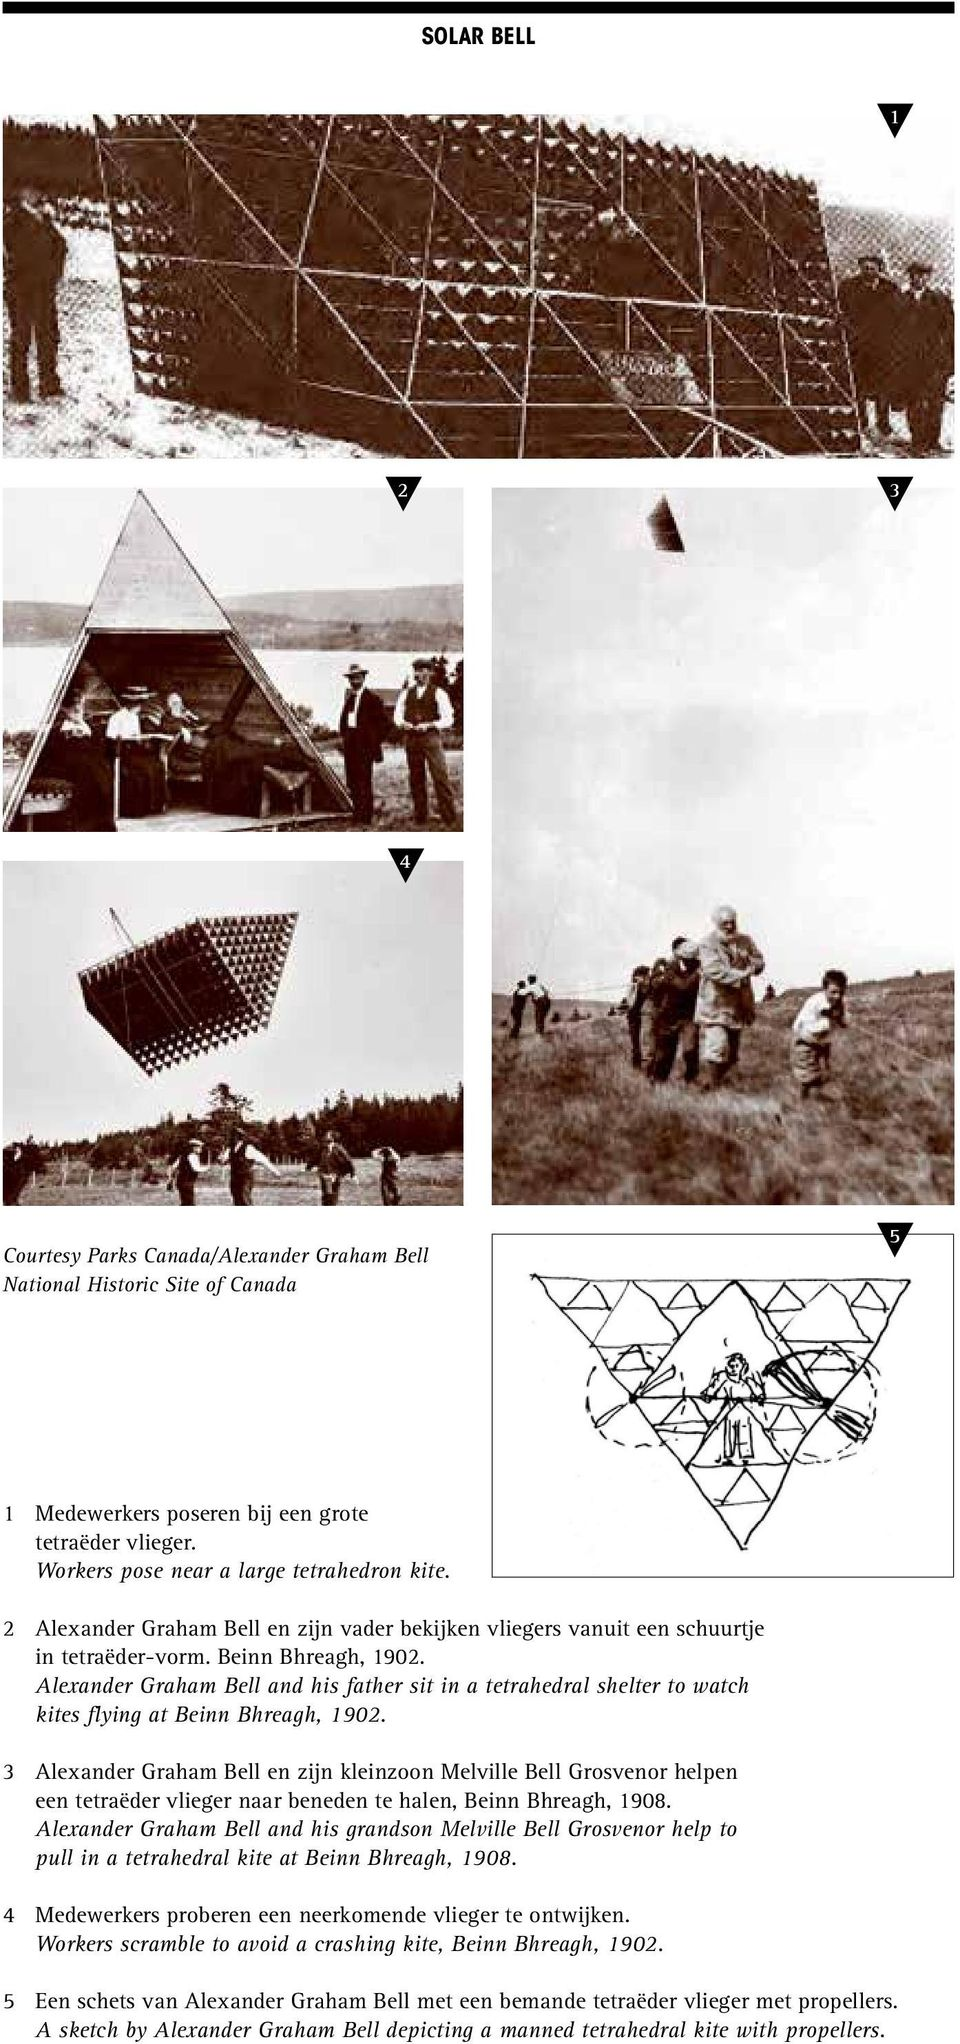 Alexander Graham Bell and his father sit in a tetrahedral shelter to watch kites flying at Beinn Bhreagh, 1902.